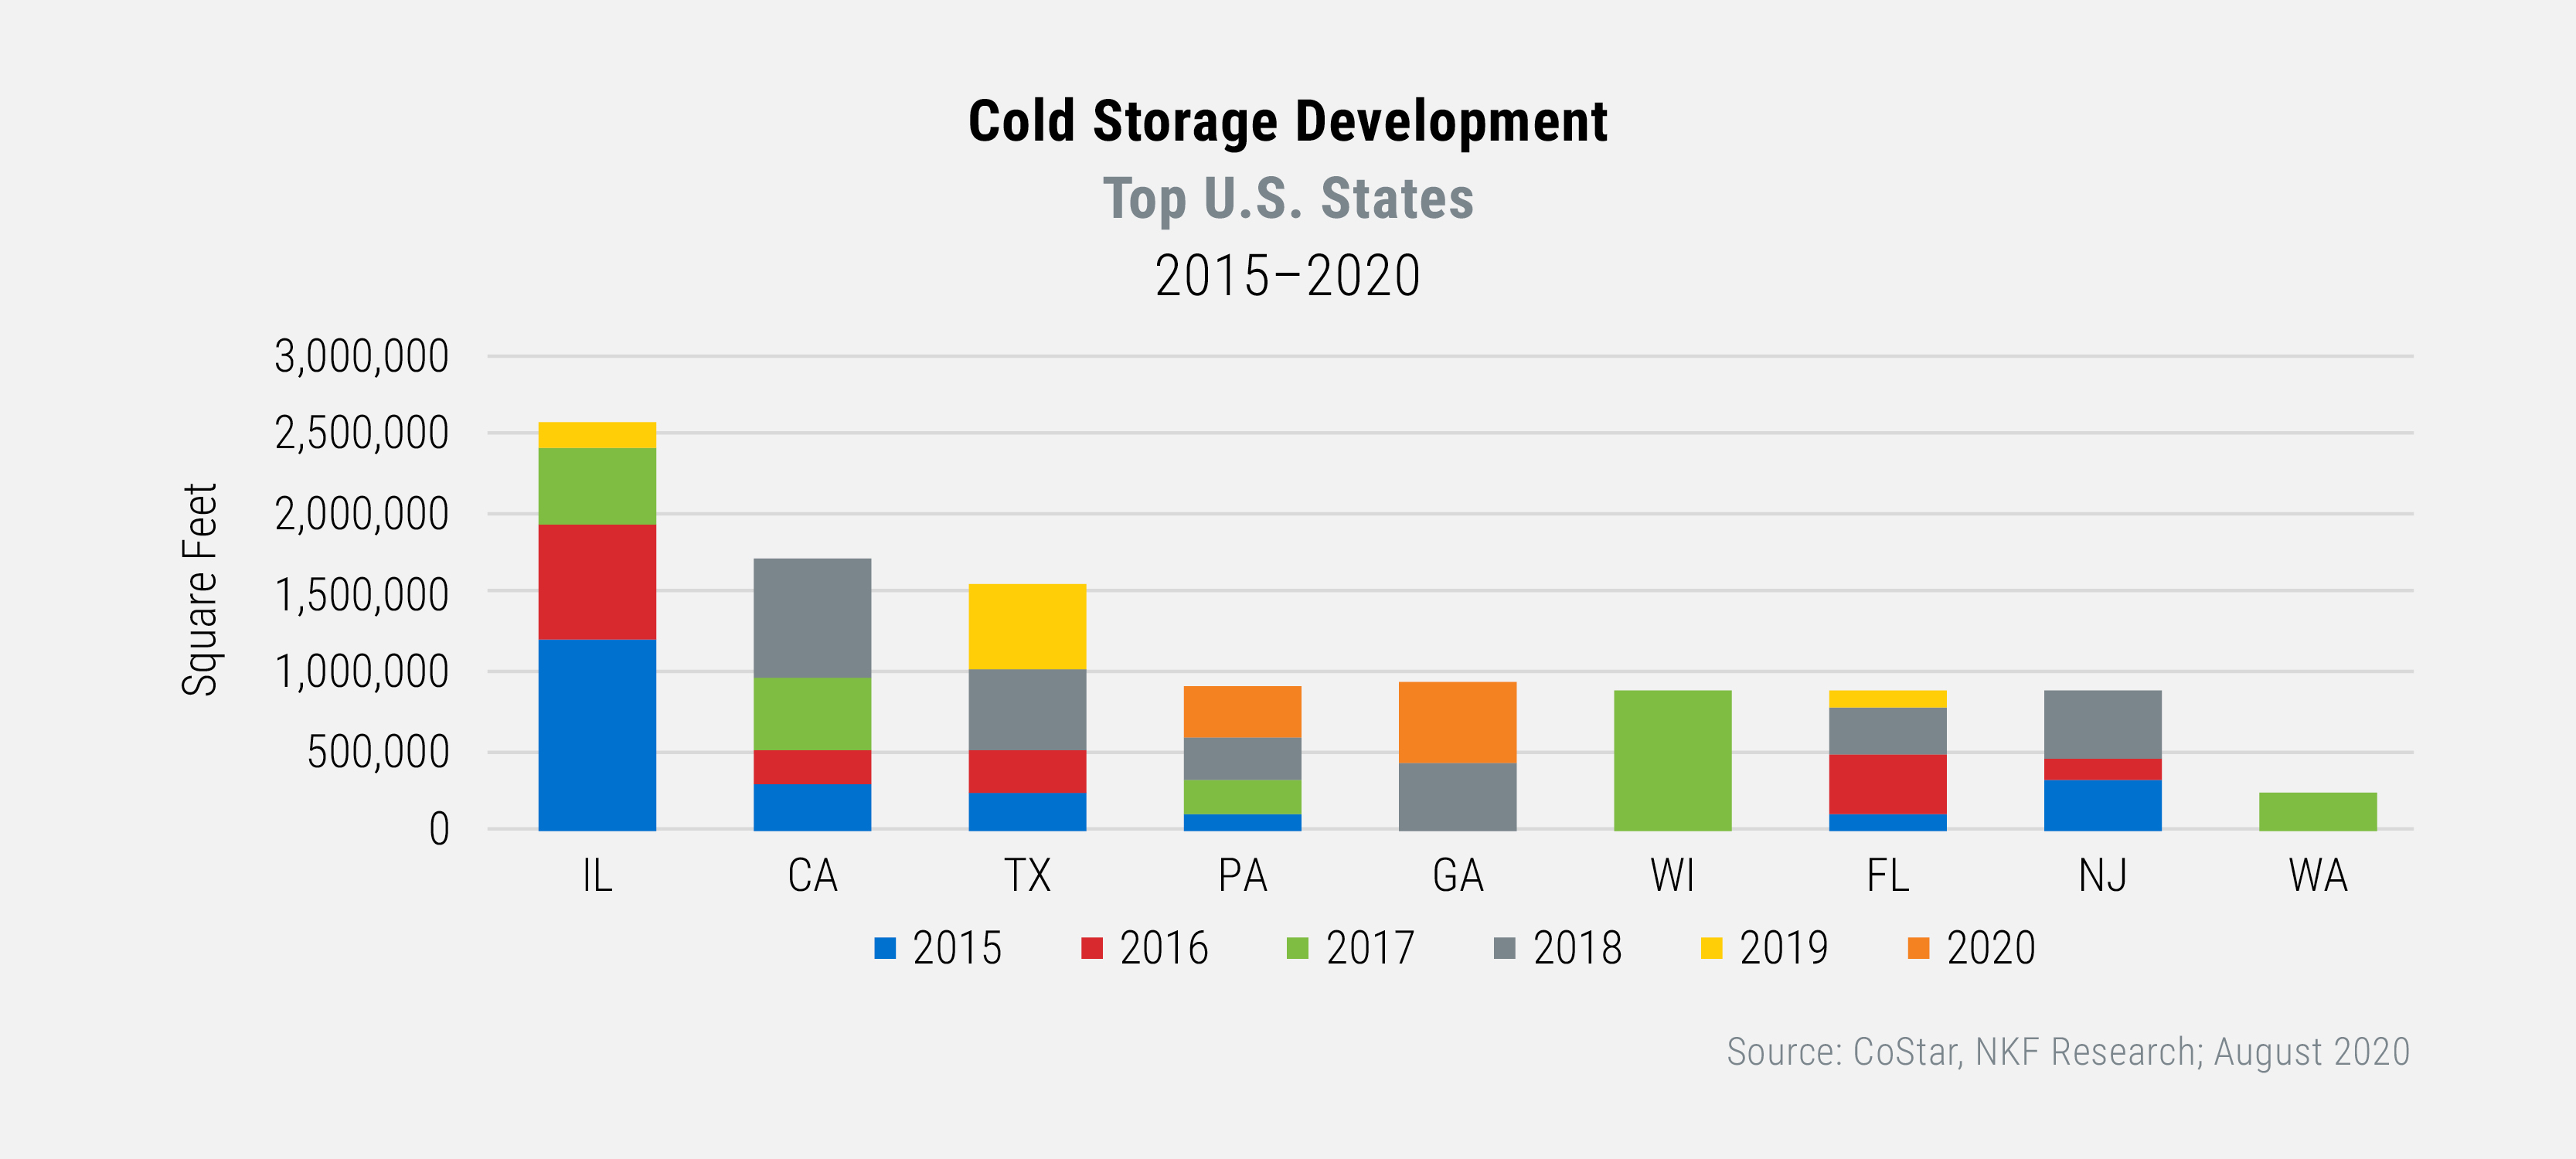 Cold Storage Development